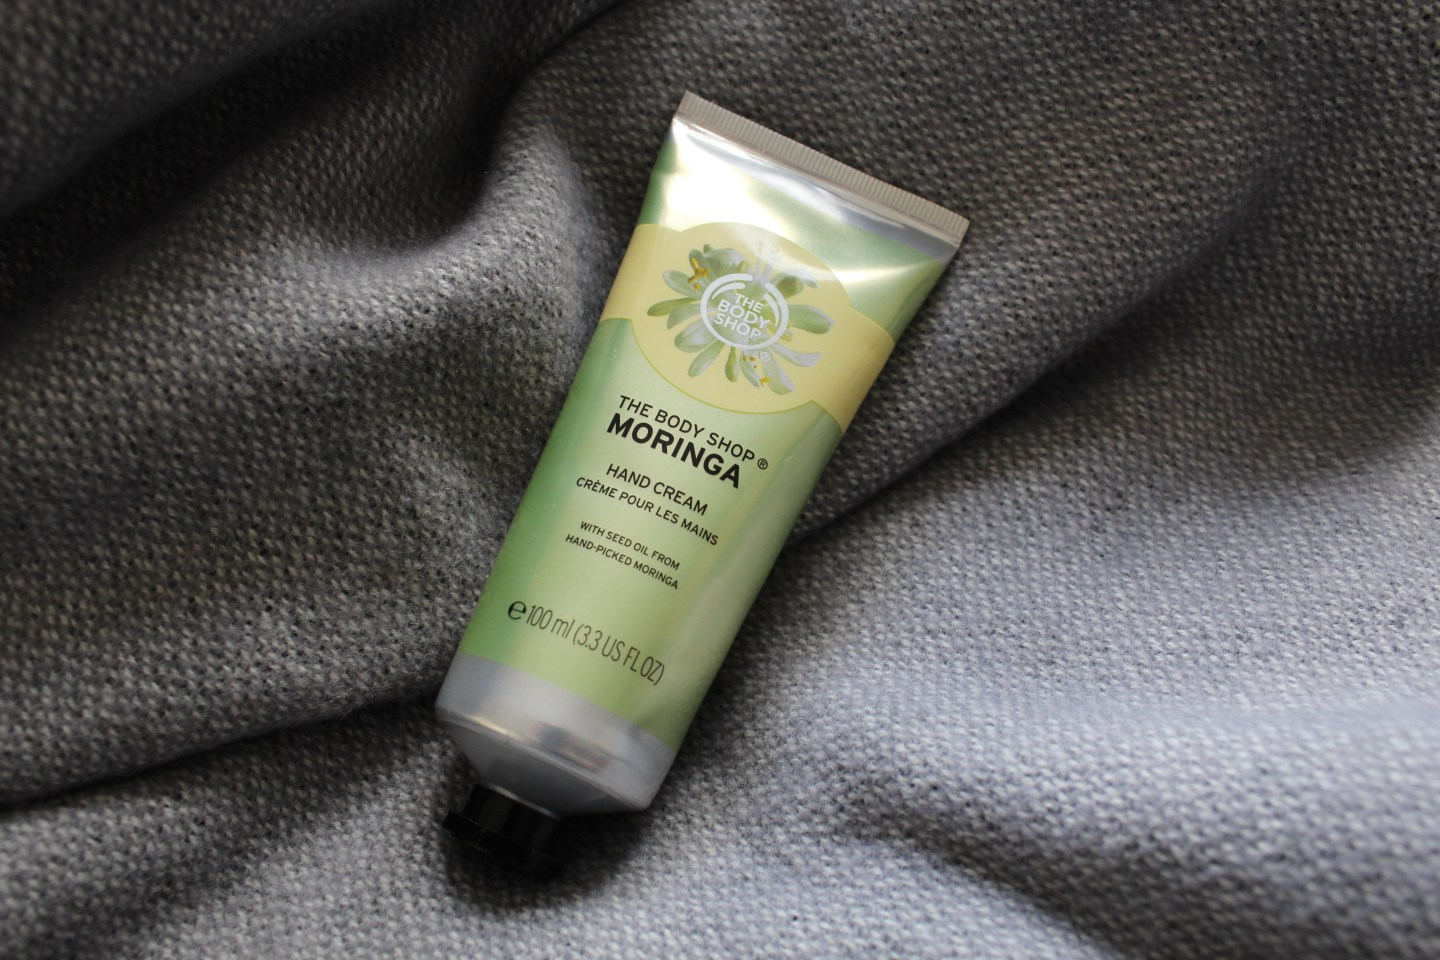 Moringa-handcream.JPG